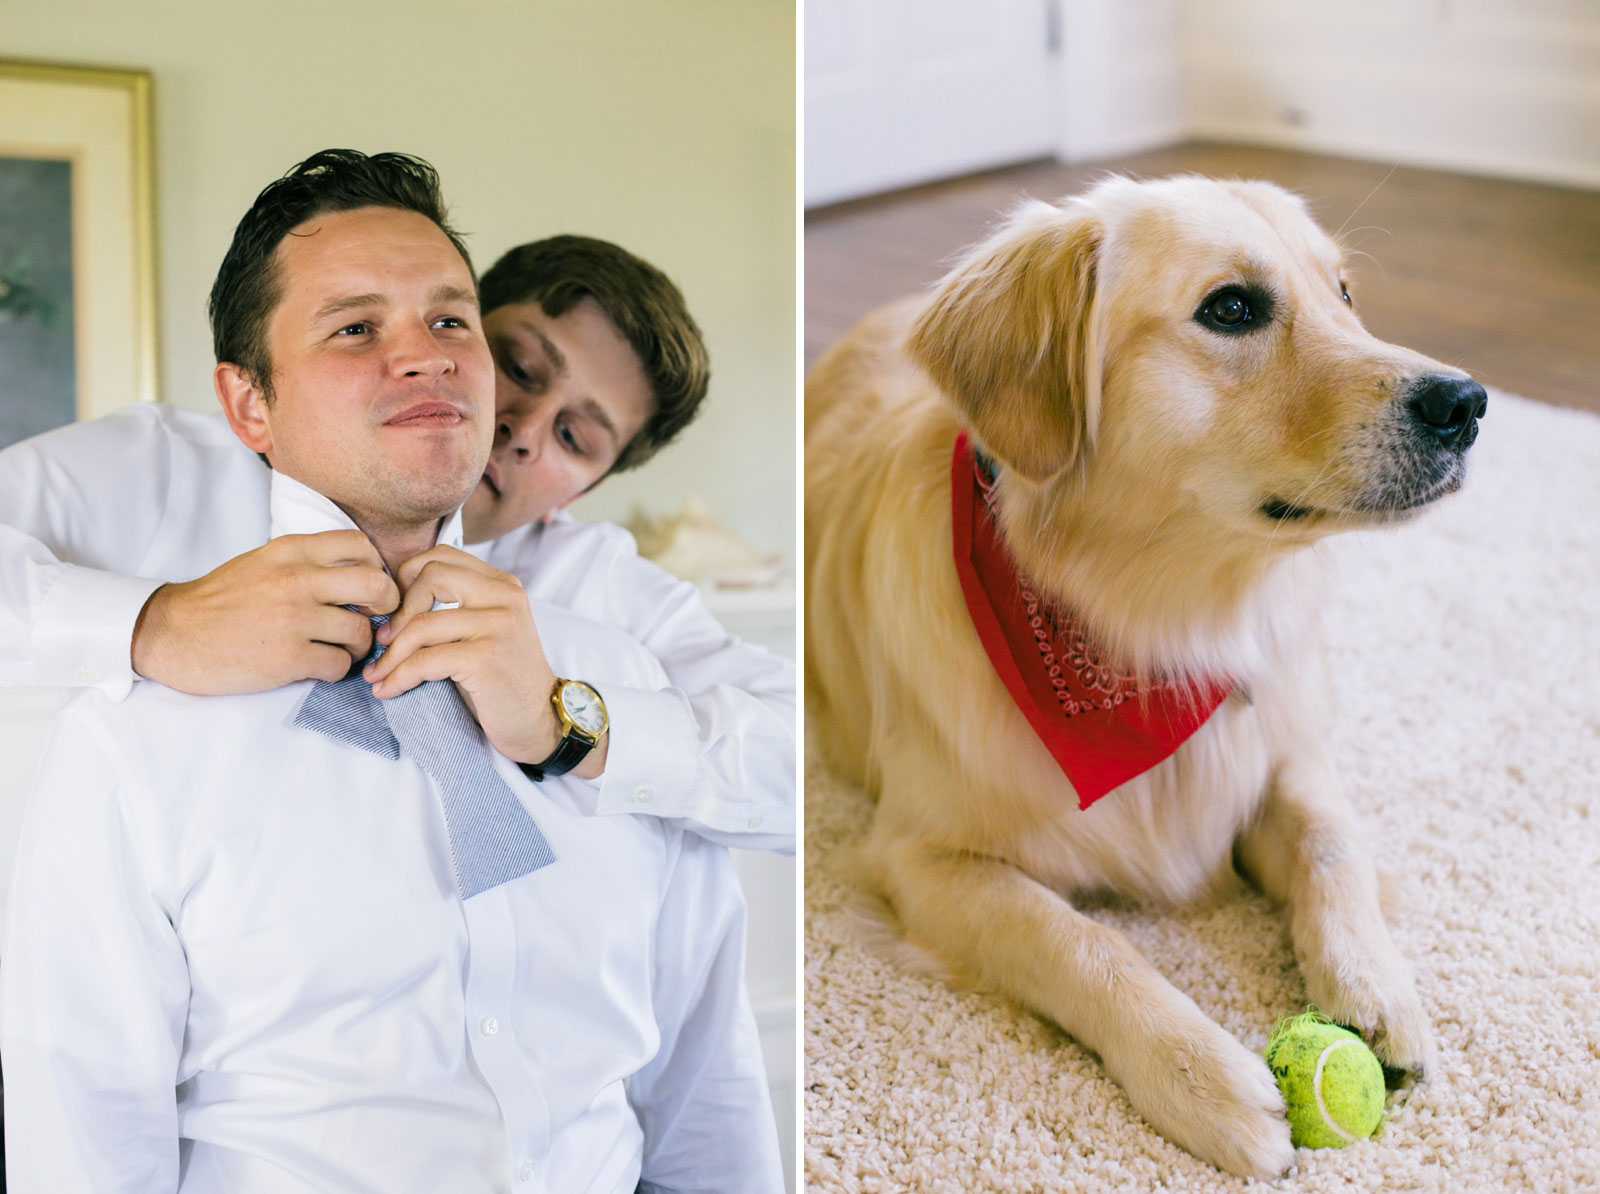 Groom getting ready, groomsman helping groom put on his bow tie, golden retriever dog